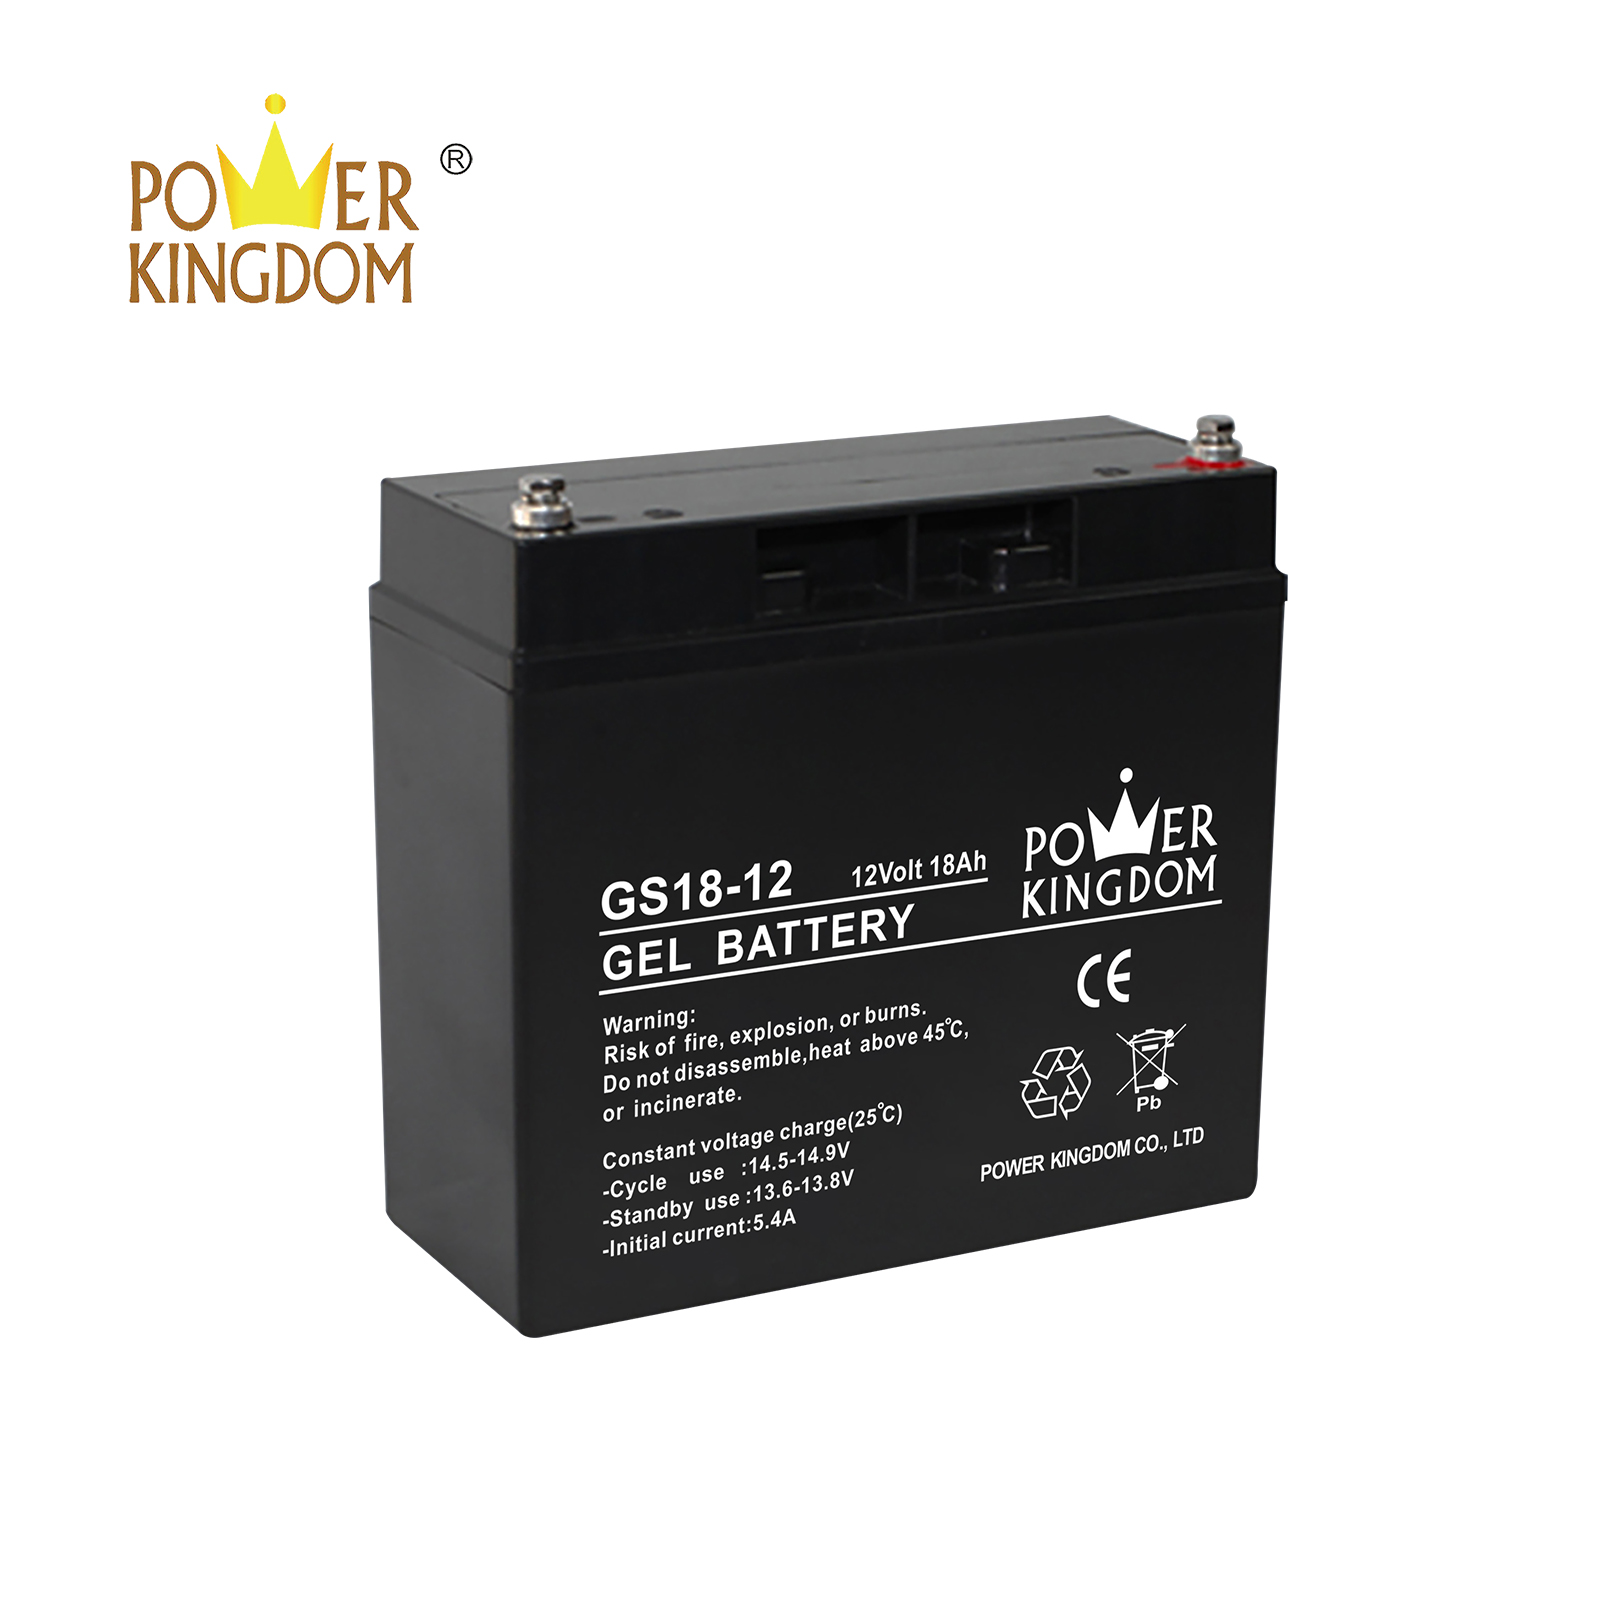 Power Kingdom ups battery pack design medical equipment-2